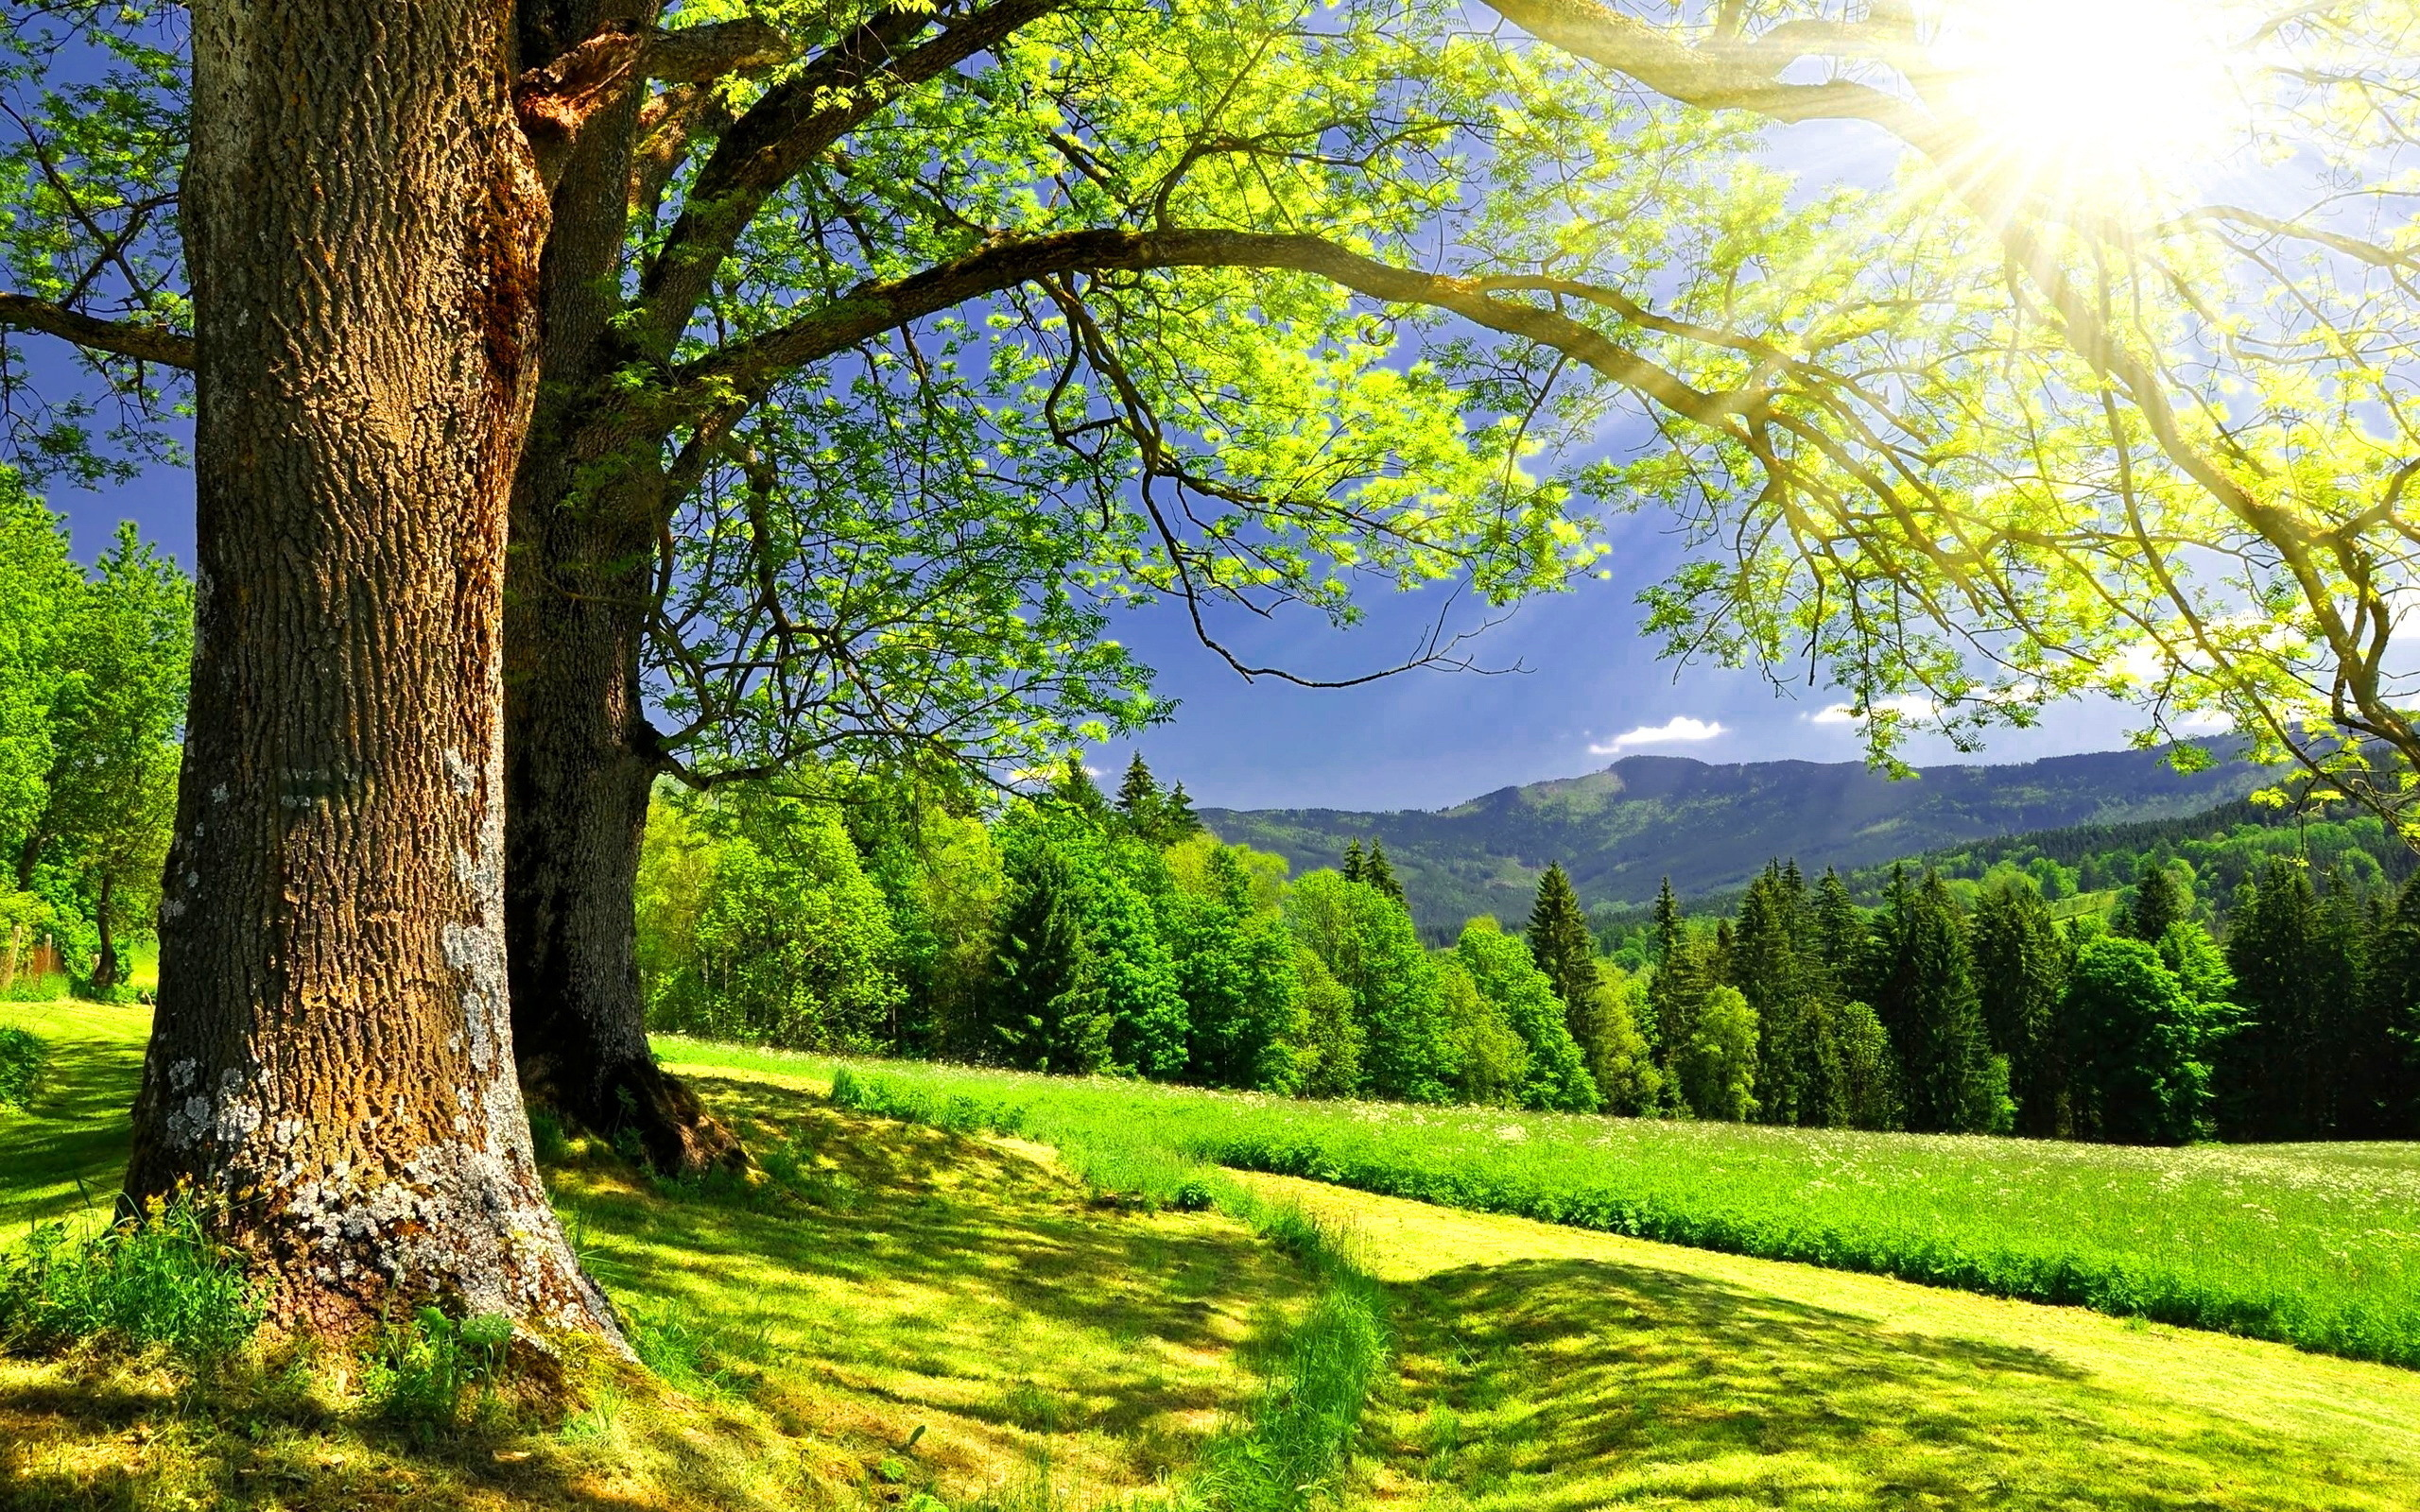 Earth - Spring  - Summer - Landscape - Tree - Forest - Sun - Sunbeam - Sunlight Wallpaper